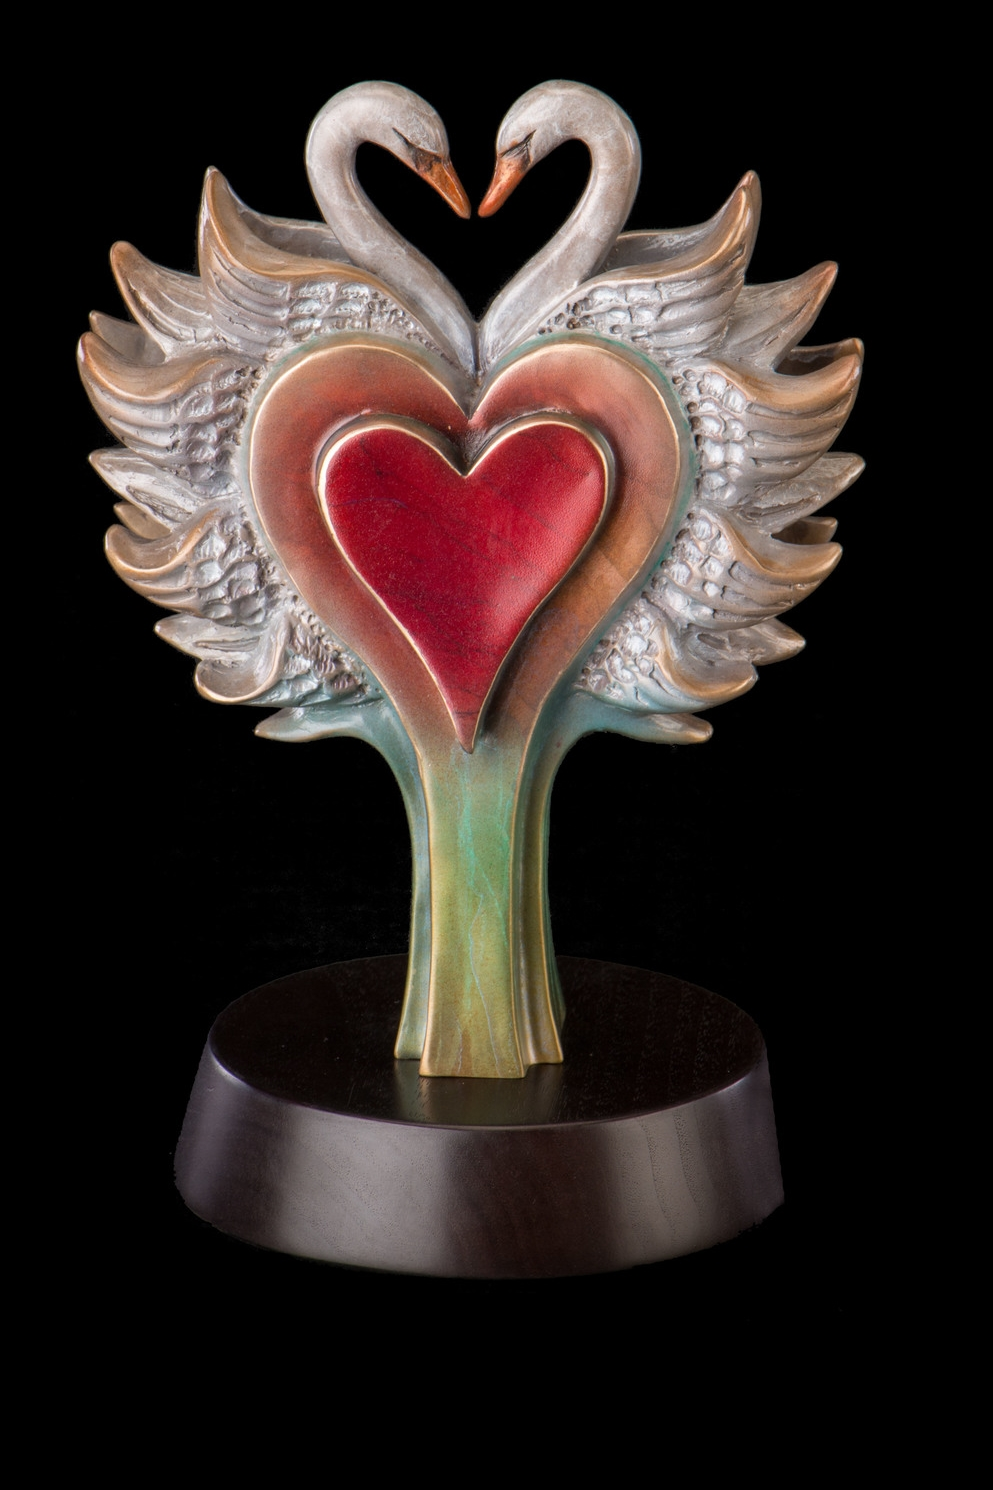 "Love Blooms, Bronze, 10.5"" H x 6.5"" W x 5.5 "" D, Edition of 50:  Hearts meet and receive; love blooms in all its glory."